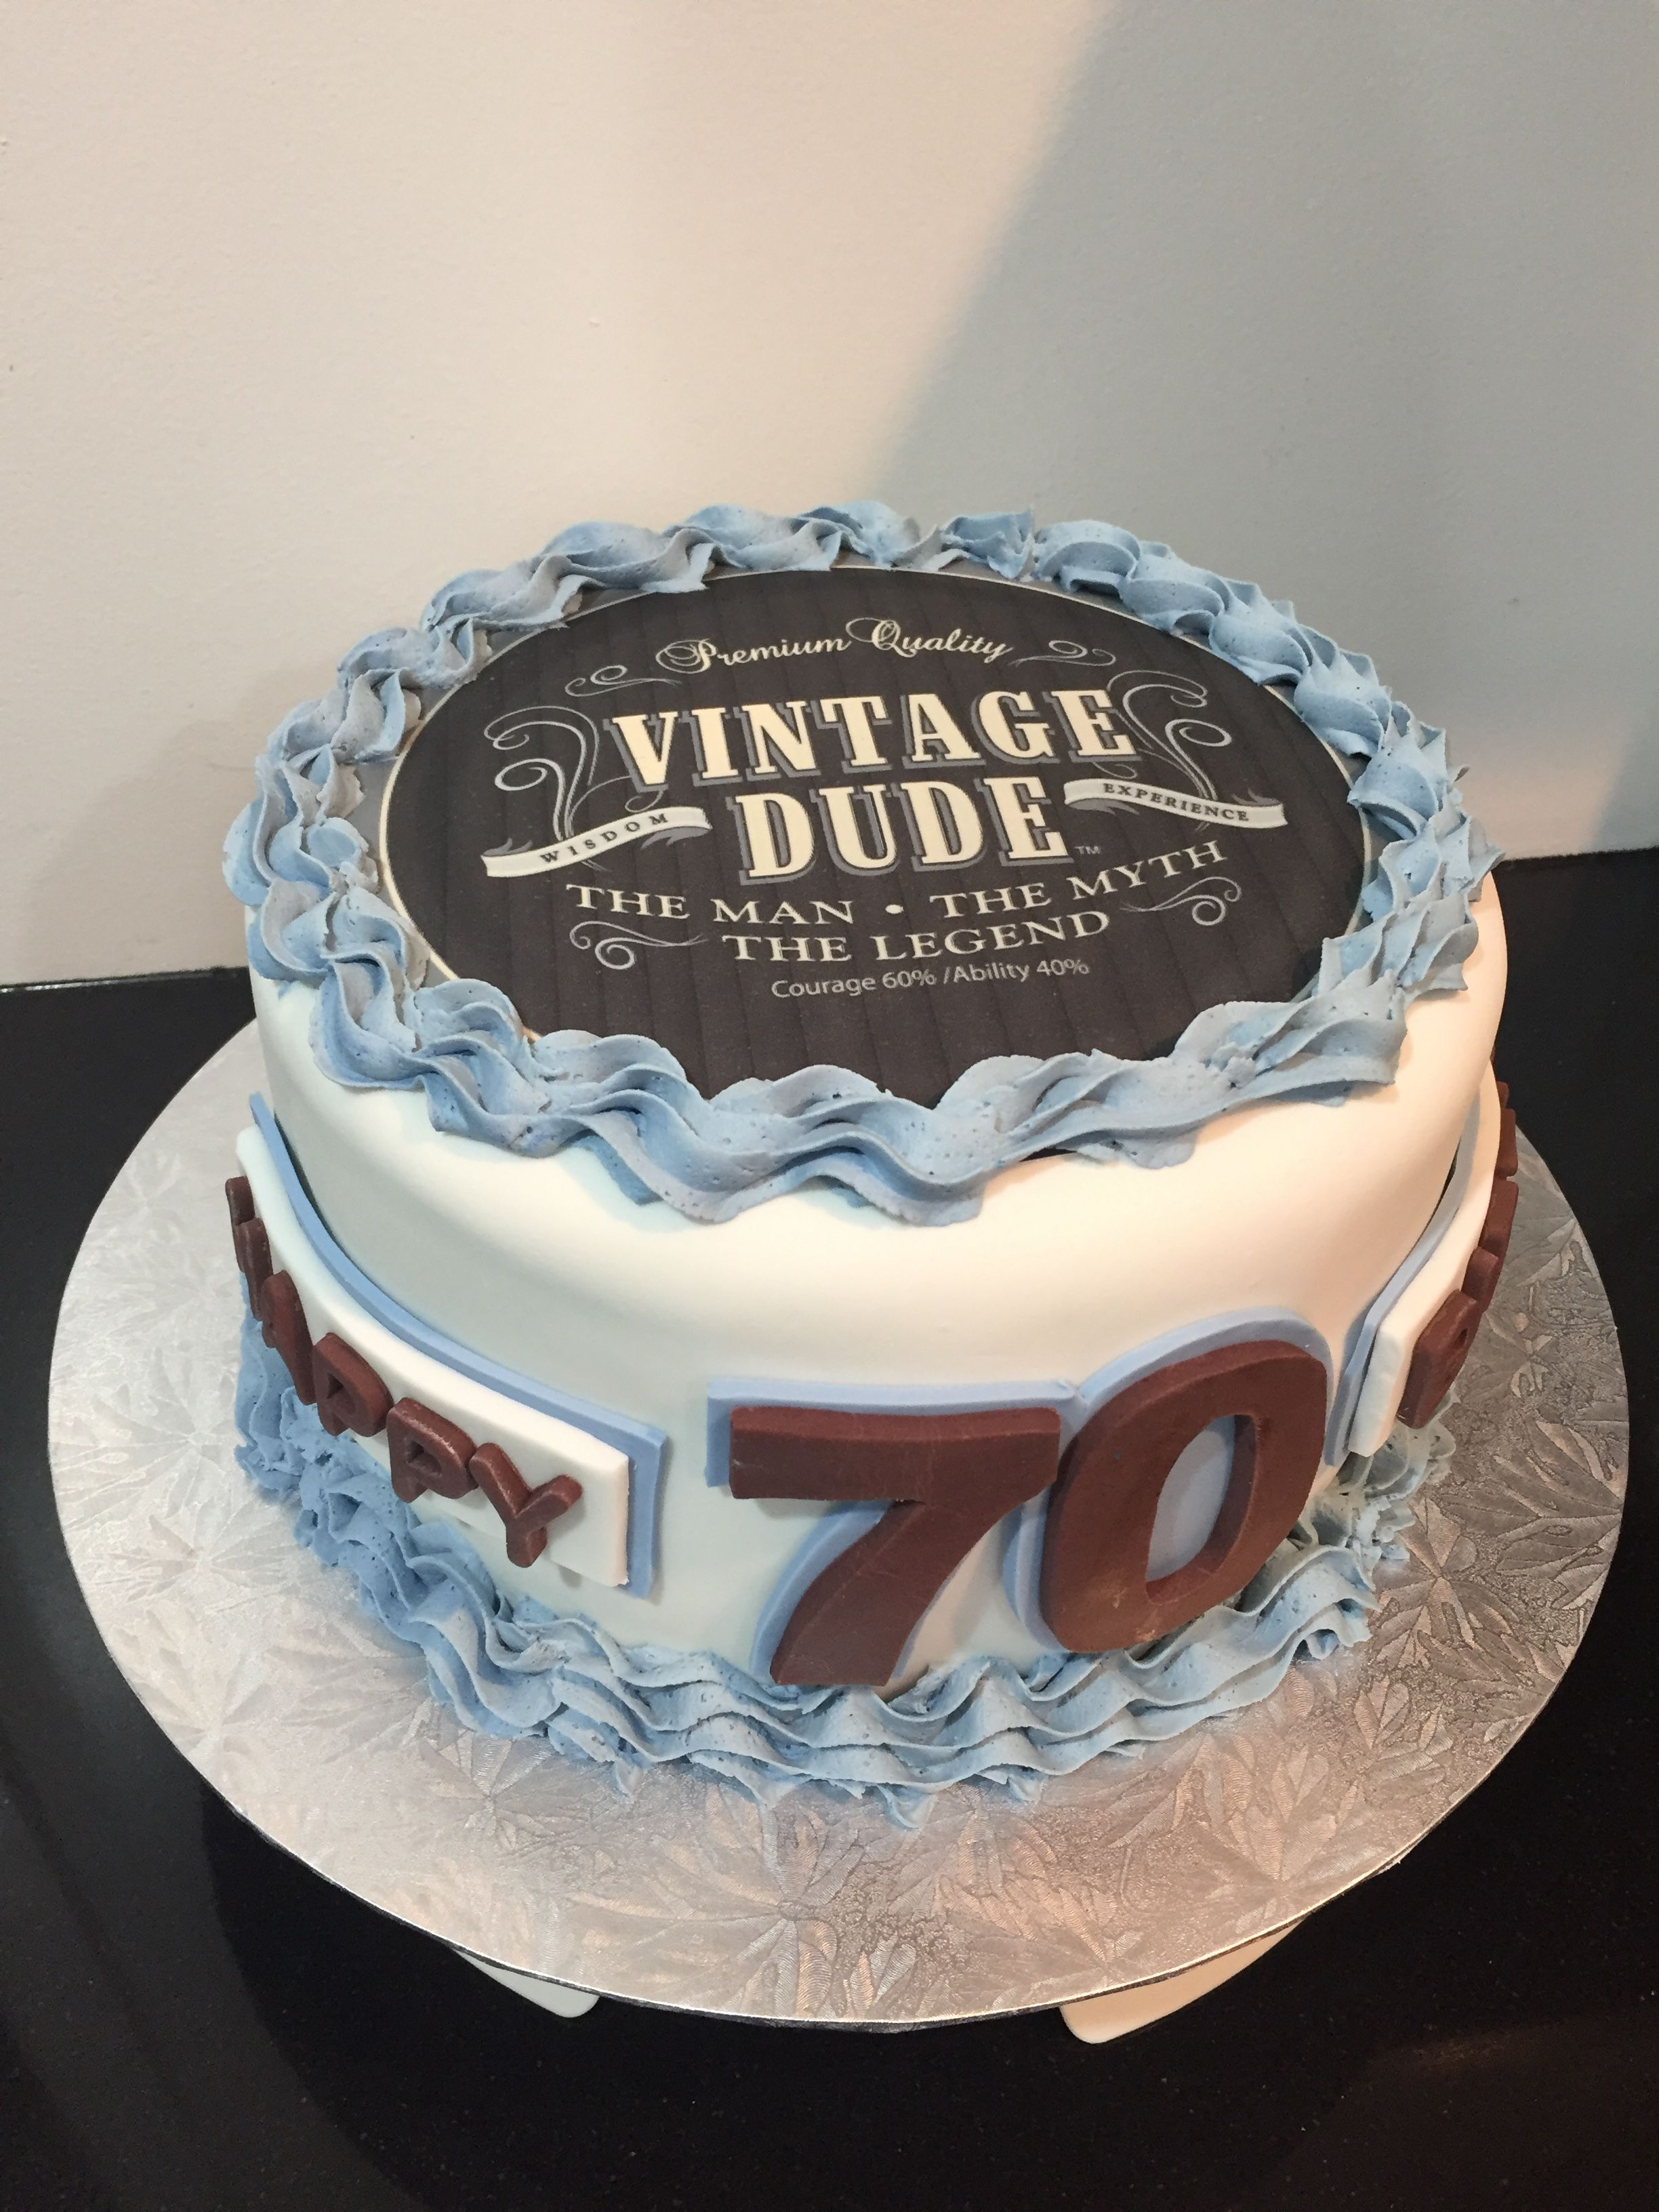 Phenomenal Vintage Dude 70Th Cake With Images 70Th Birthday Cake For Men Personalised Birthday Cards Paralily Jamesorg